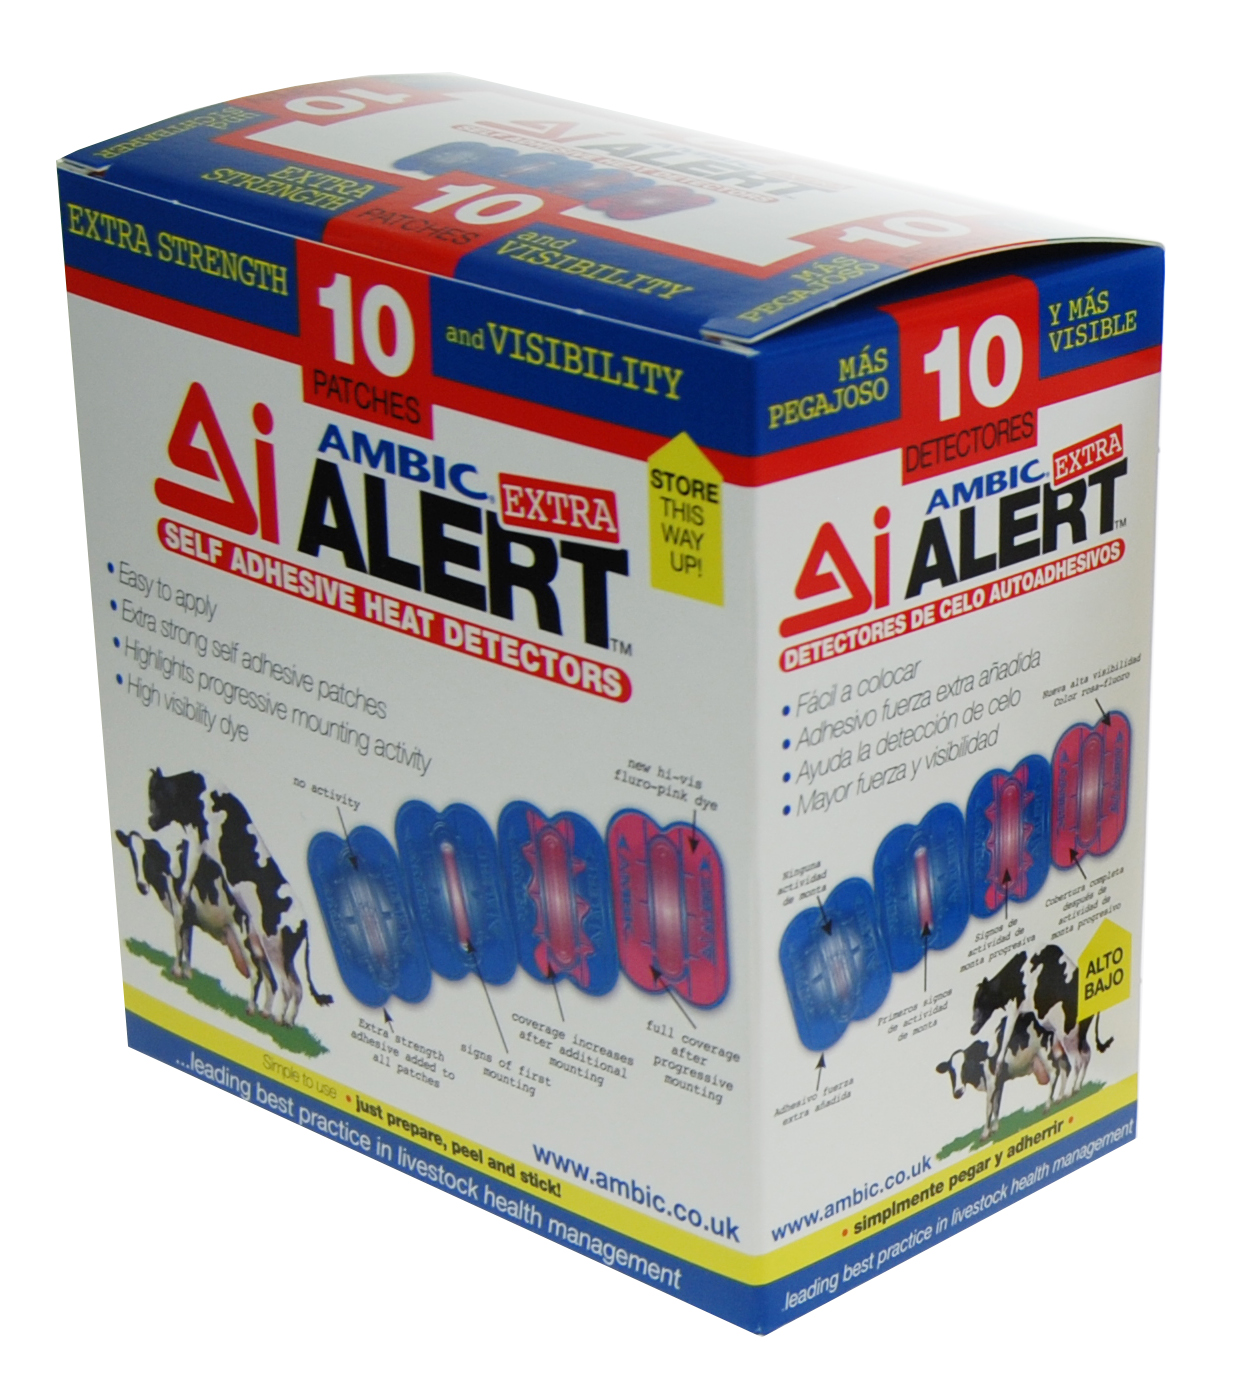 New Ambic Extra AI Alert 10 pack